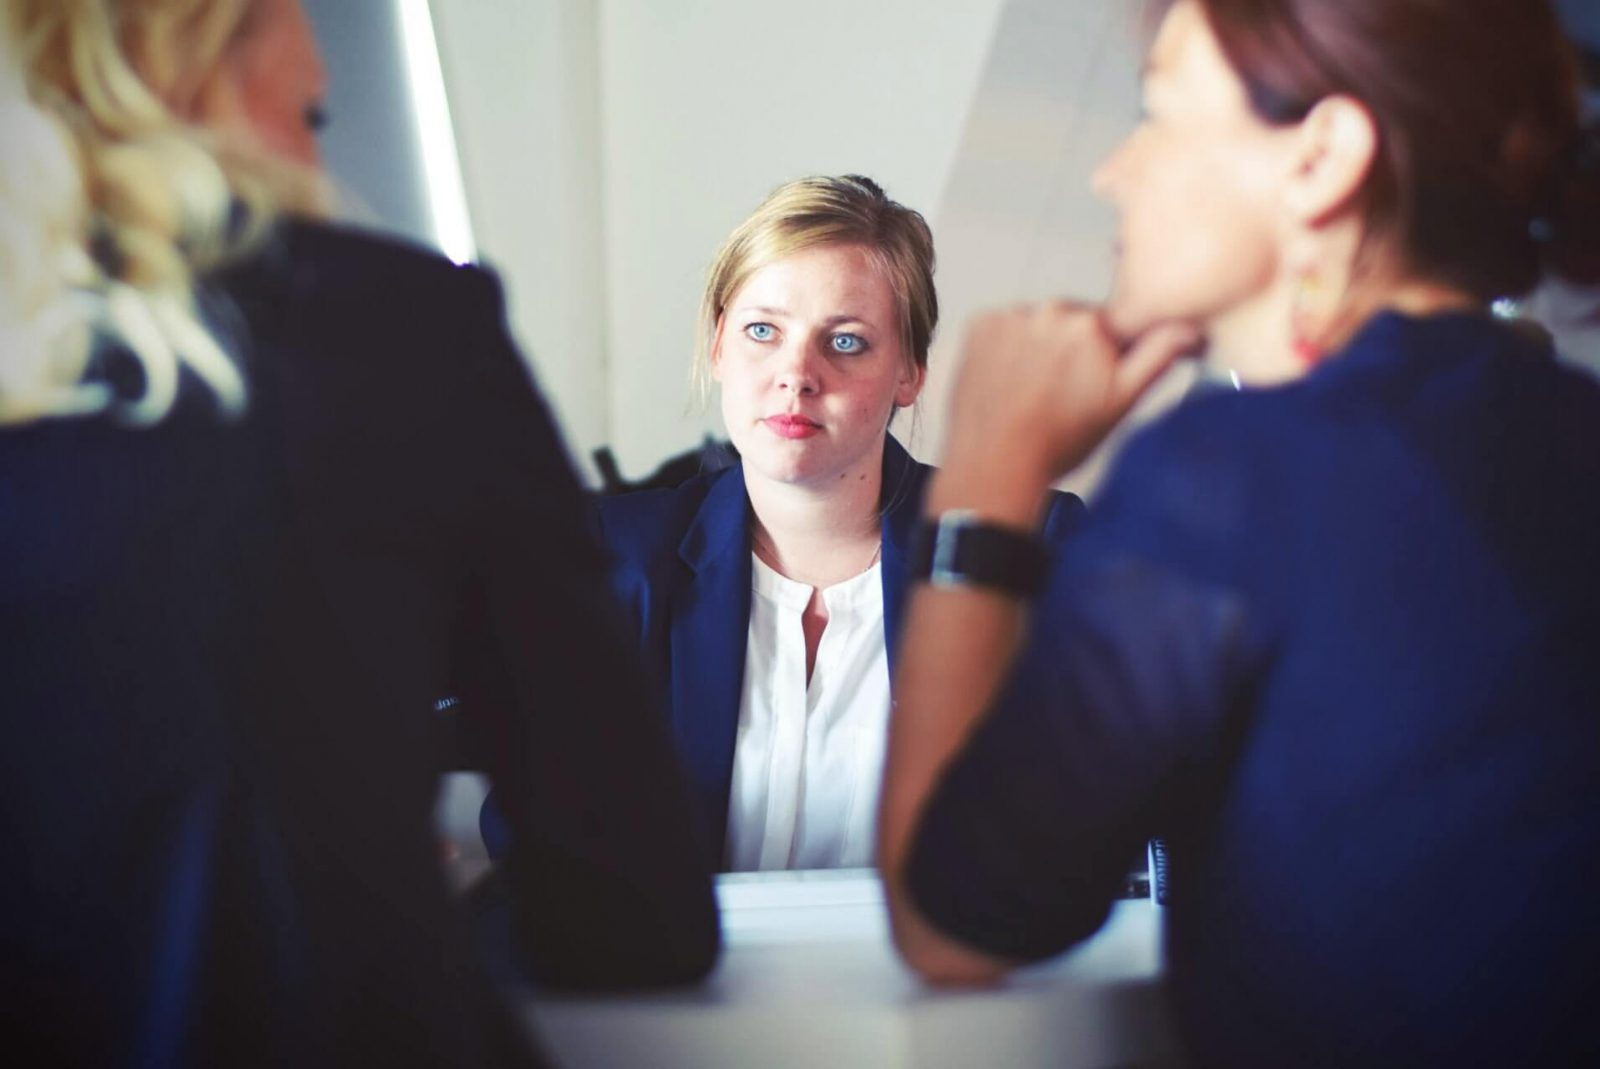 Misconduct, Disciplinary & Grievance Handling